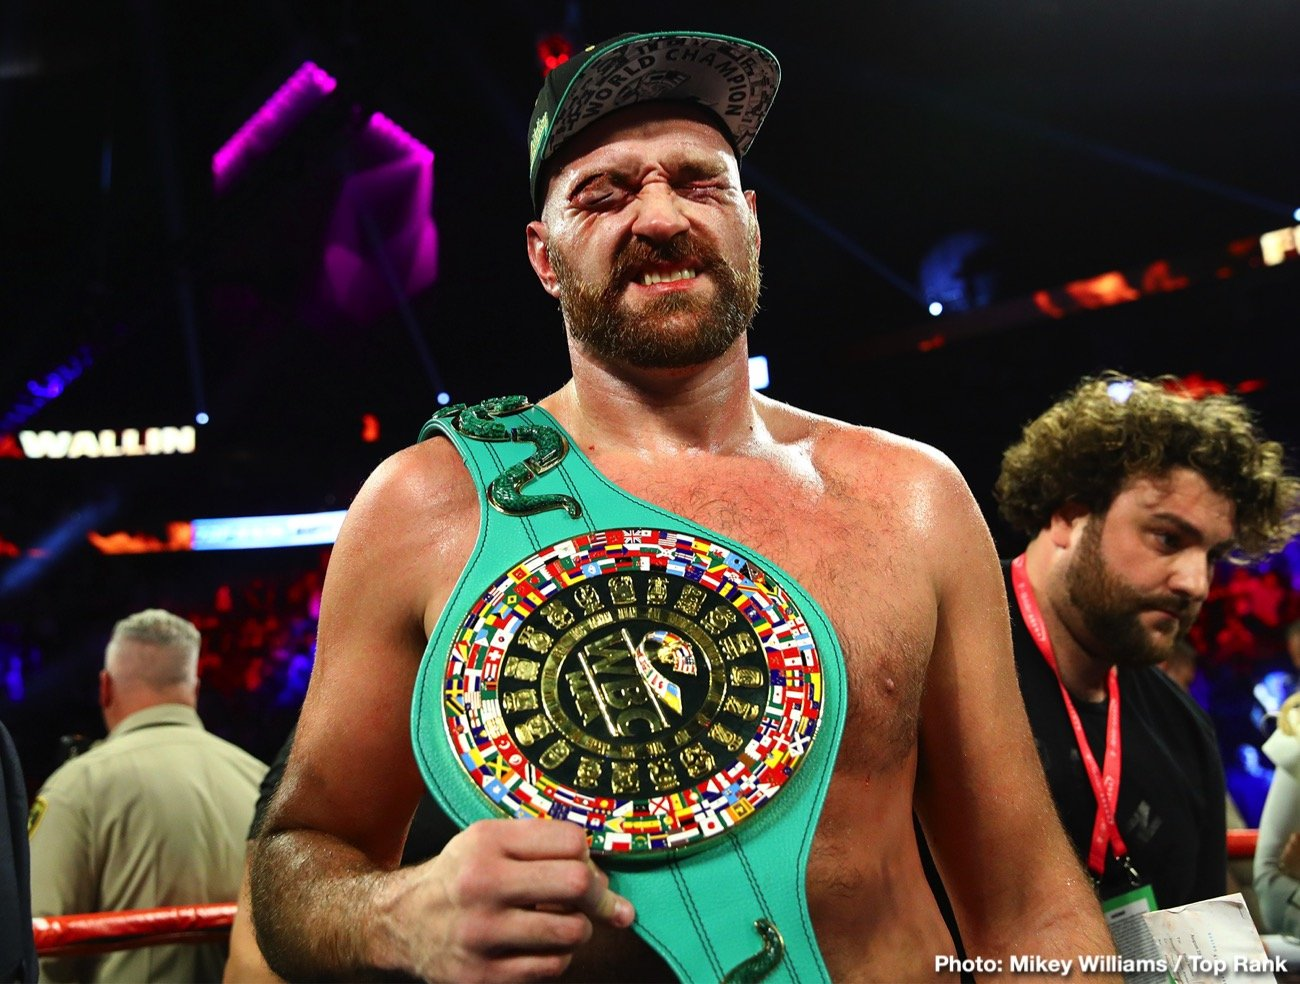 """Tyson Fury - There is no doubt about it, Tyson Fury has a lot going on right now: WWE (his debut to come on October 31st in Saudi Arabia), a Christmas single with pop star Robbie Wiliams, his soon to be released autobiography, entitled """"Behind The Mask,"""" living life out in L.A. But in terms of boxing, Fury has perhaps lost interest. This is the opinion of promoter Eddie Hearn, who told IFL TV over the weekend how he feels Fury has """"lost heart,"""" and is """"packing up boxing."""""""